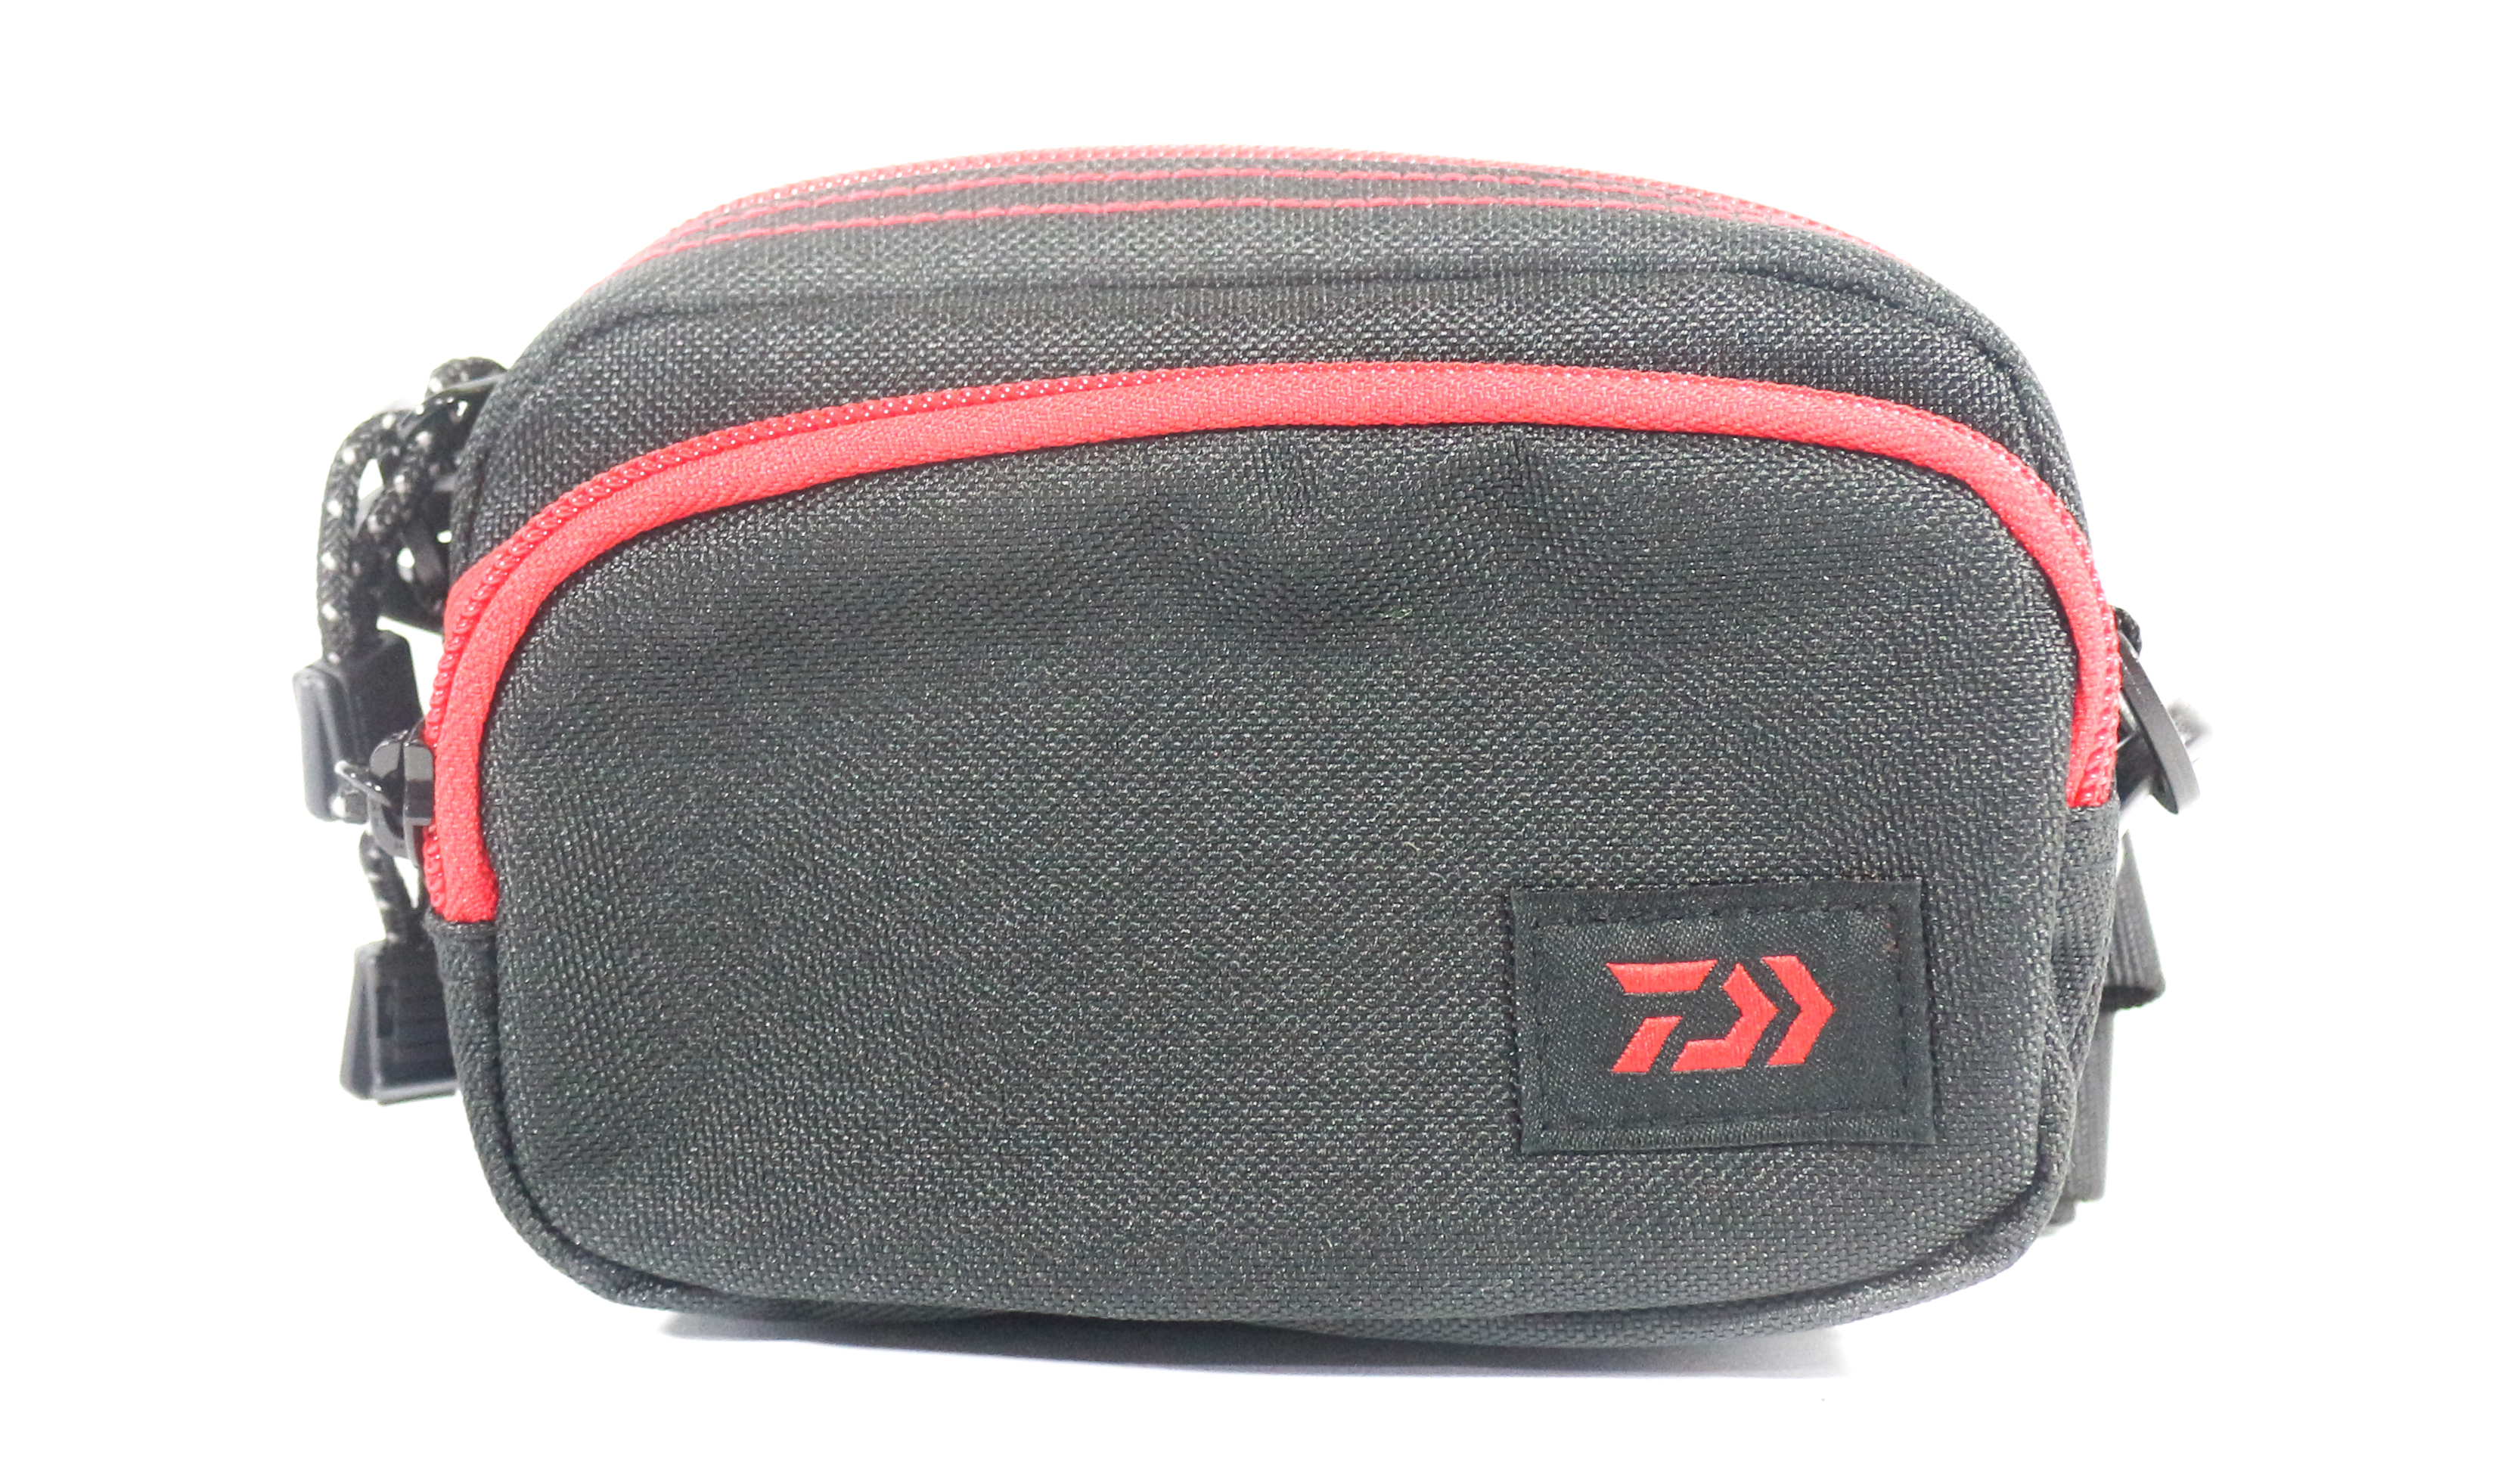 Sale Daiwa Light Pouch 6 x 16 x 11 cm Black 190817